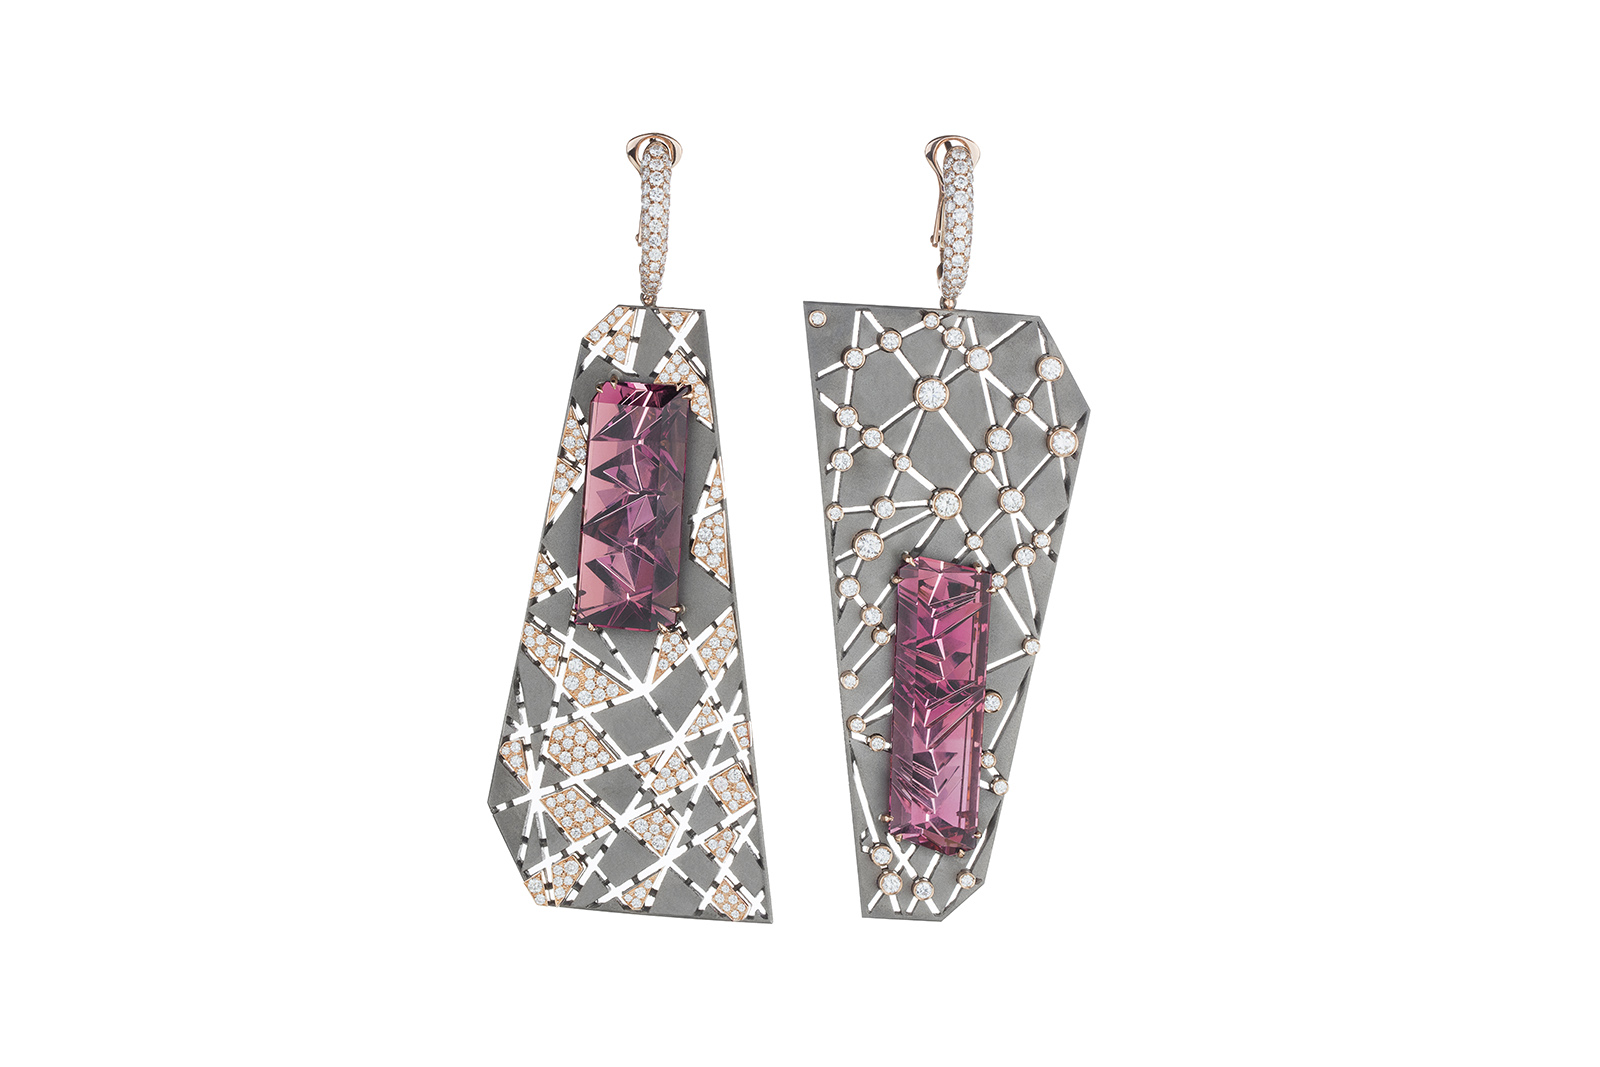 VMAR 'Orion &Auriga' earrings with fancy cut pink tourmalines of 17.50ct and 17.60ct, and diamonds in pink gold and titanium